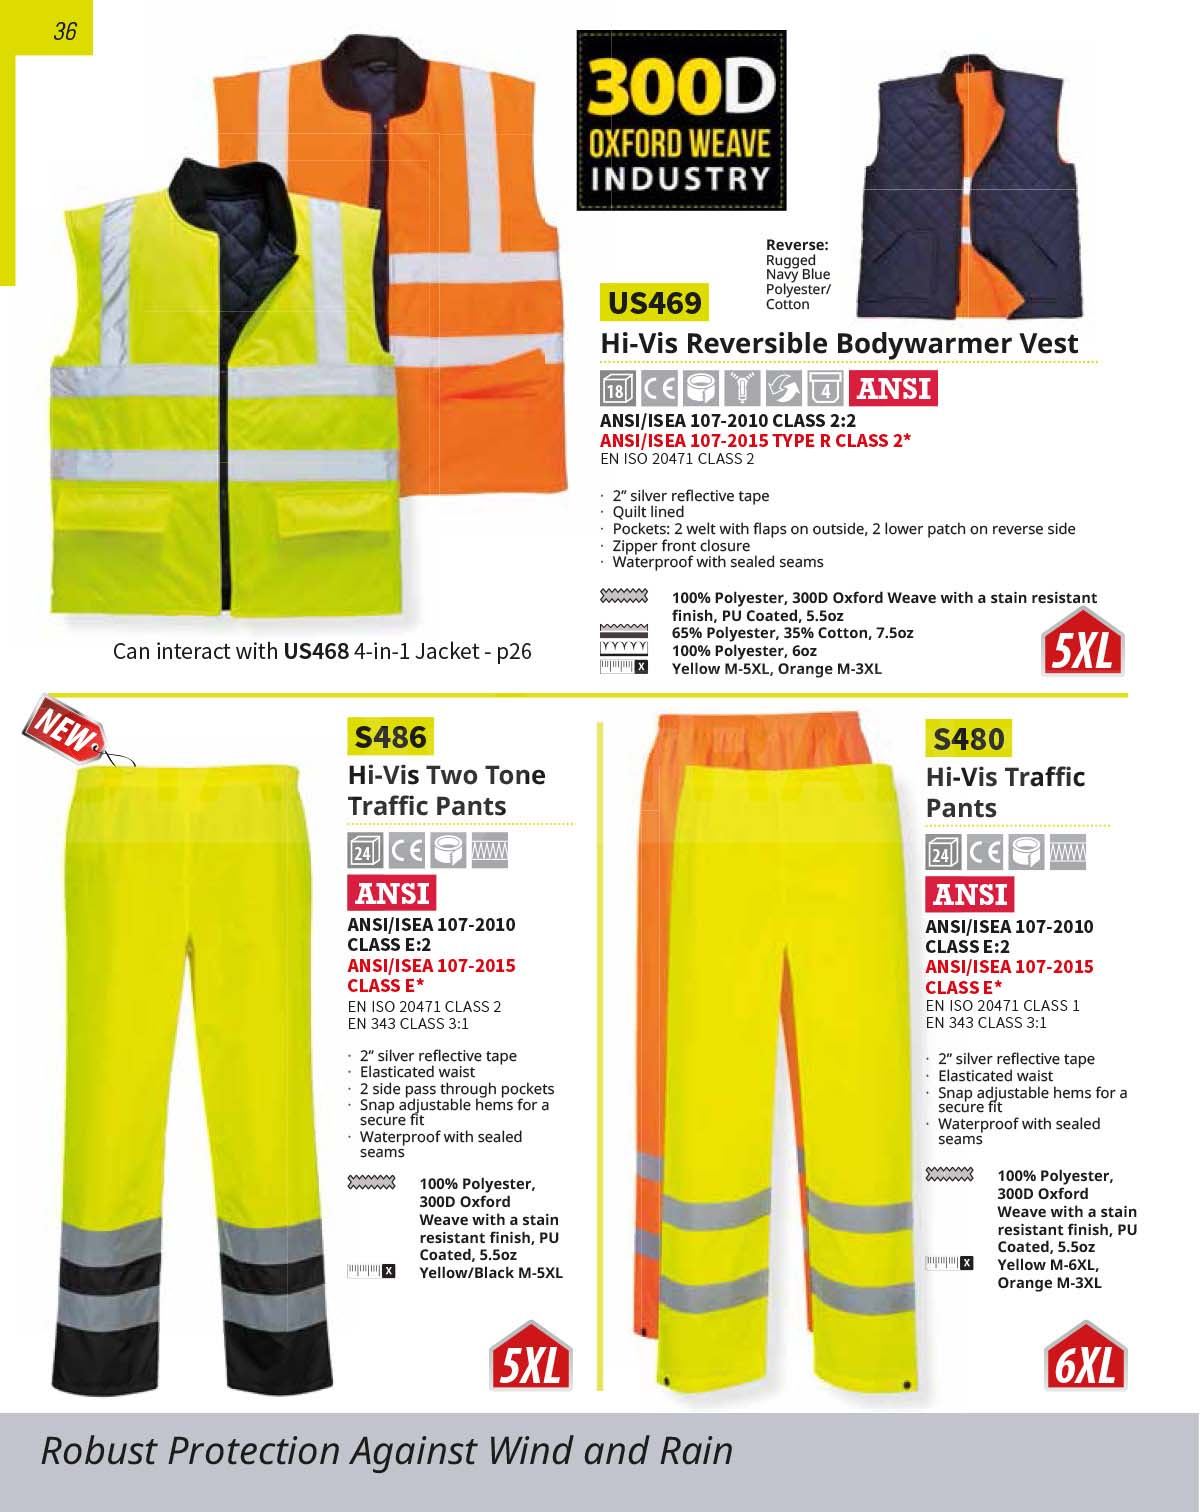 S480 High Vis Traffic Pants